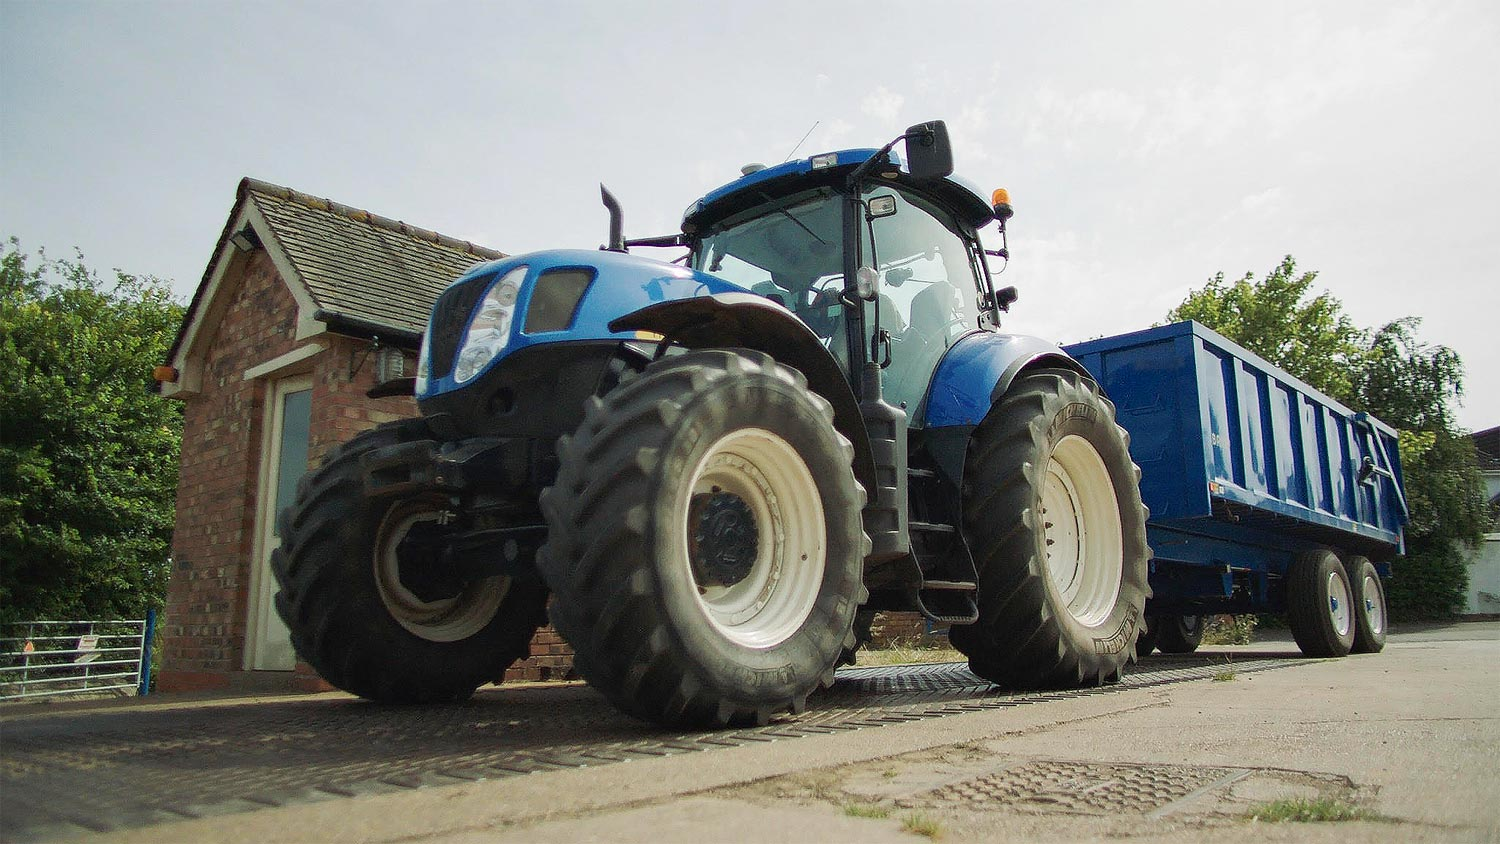 New Figures Reveal Farming is the UK's Most Dangerous Industry 7